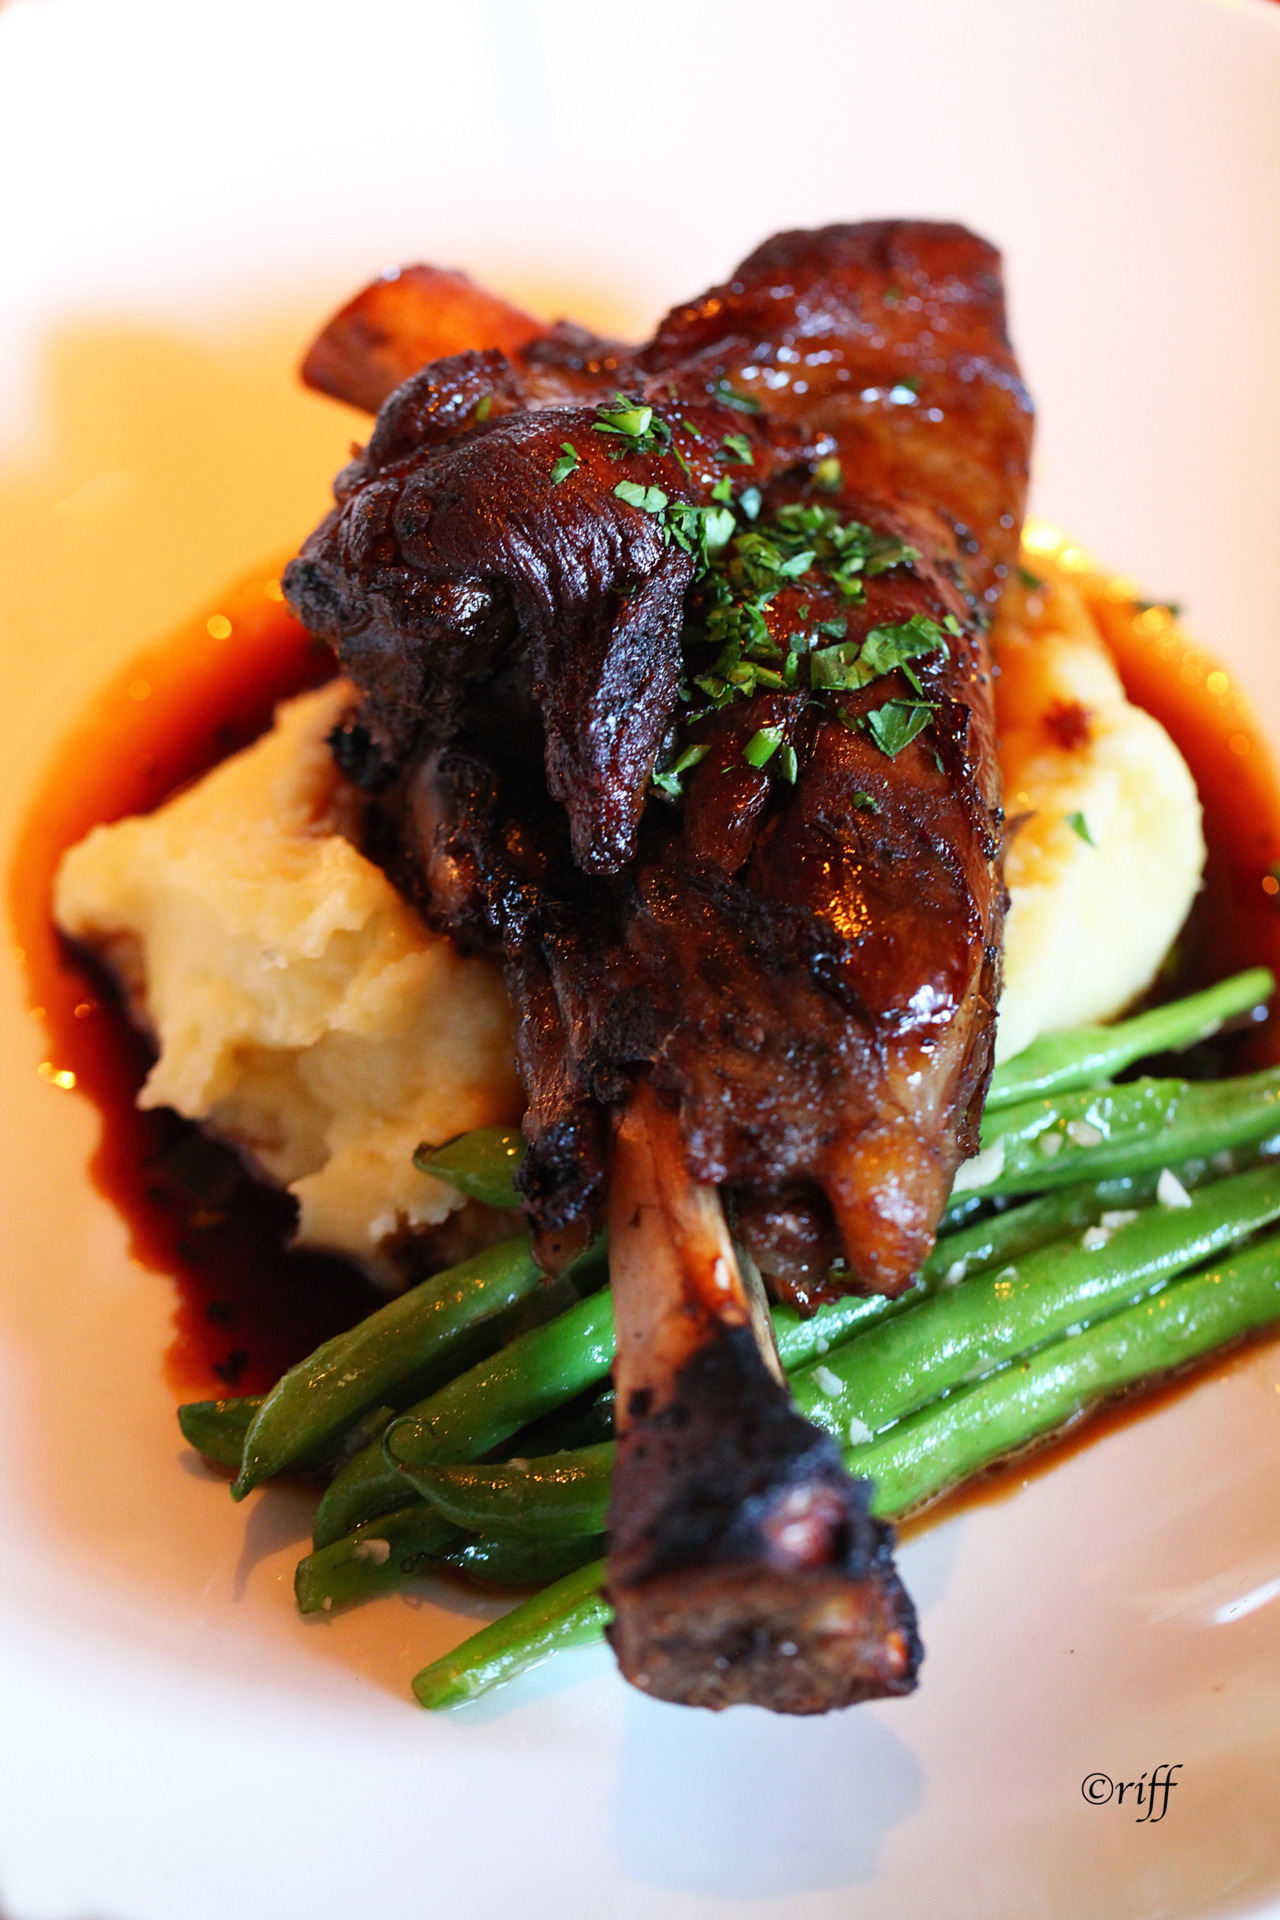 Rosemary Braised Lamb ShanksThis is a great meal to make when you have company coming over: the prep is done in advance - and you can enjoy the guests while dinner cooks!There are a lot of good recipes out there, but this is my favorite.Ingredients:6 lamb shankssalt and pepper to taste2 tablespoons olive oil2 onions, chopped3 large carrots, cut into 1/4 inch rounds10 cloves garlic, minced1 (750 milliliter) bottle red wine1 (28 ounce) can whole peeled tomatoes with juice1 (10.5 ounce) can condensed chicken broth1 (10.5 ounce) can beef broth5 teaspoons chopped fresh rosemary2 teaspoons chopped fresh thymeDirections:Sprinkle shanks with salt and pepper. Heat oil in heavy large pot over medium-high heat. Working in batches, cook shanks until brown on all sides, about 8 minutes. Transfer shanks to plate.Add onions, carrots and garlic to pot and saute until golden brown, about 10 minutes. Stir in wine, tomatoes, chicken broth and beef broth. Season with rosemary and thyme. Return shanks to pot, pressing down to submerge. Bring to a boil, then reduce heat to medium-low. Cover, and simmer until meat is tender, about 2 hours. Given the luxury of time, I like to simmer even longer, until the meat is just about falling off the bone!Remove cover from pot. Simmer about 20 minutes longer. Transfer shanks to platter, place in a warm oven. Boil juices in pot until thickened, about 15 minutes. Spoon over shanks. Try serving with mashed potatoes, or polenta: you really need something that can sop up all that wonderful jus!